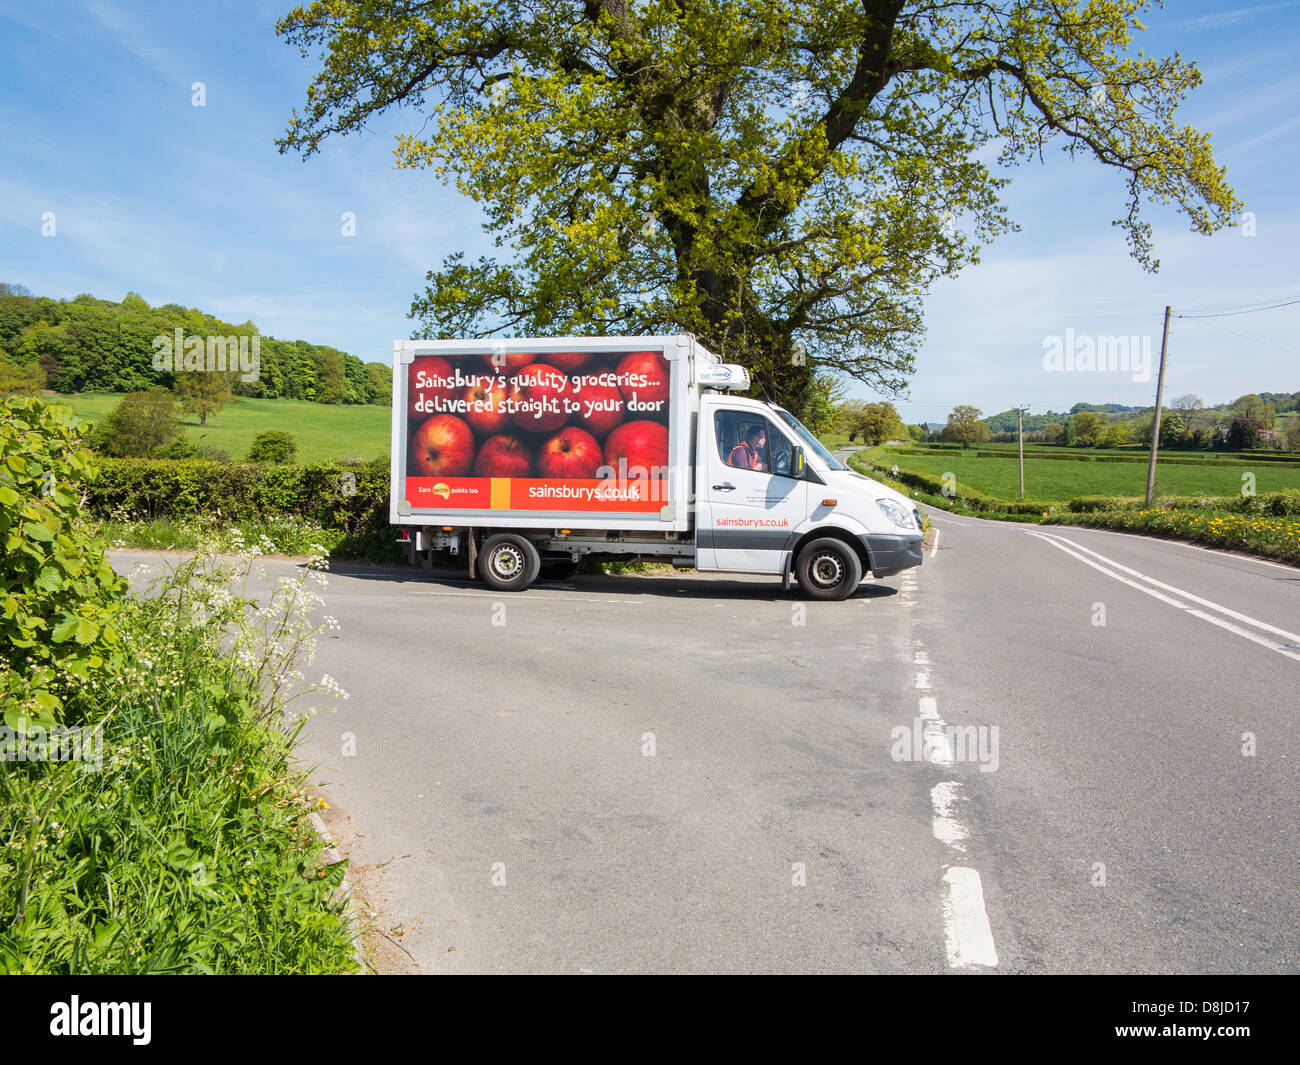 Sainsbury's delivery van in the rural setting of the Derbyshire dales near Wirksworth, England. - Stock Image